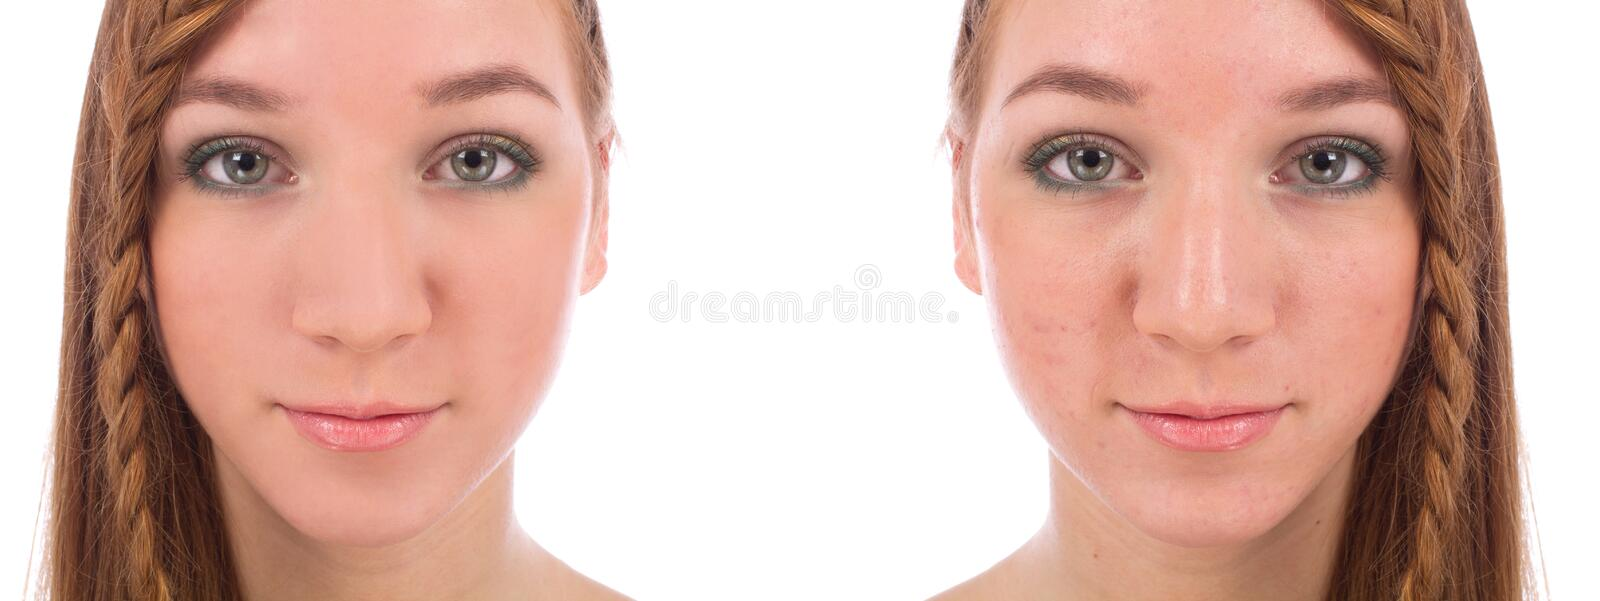 Close-up da cara do adolescente com e sem a acne imagem de stock royalty free